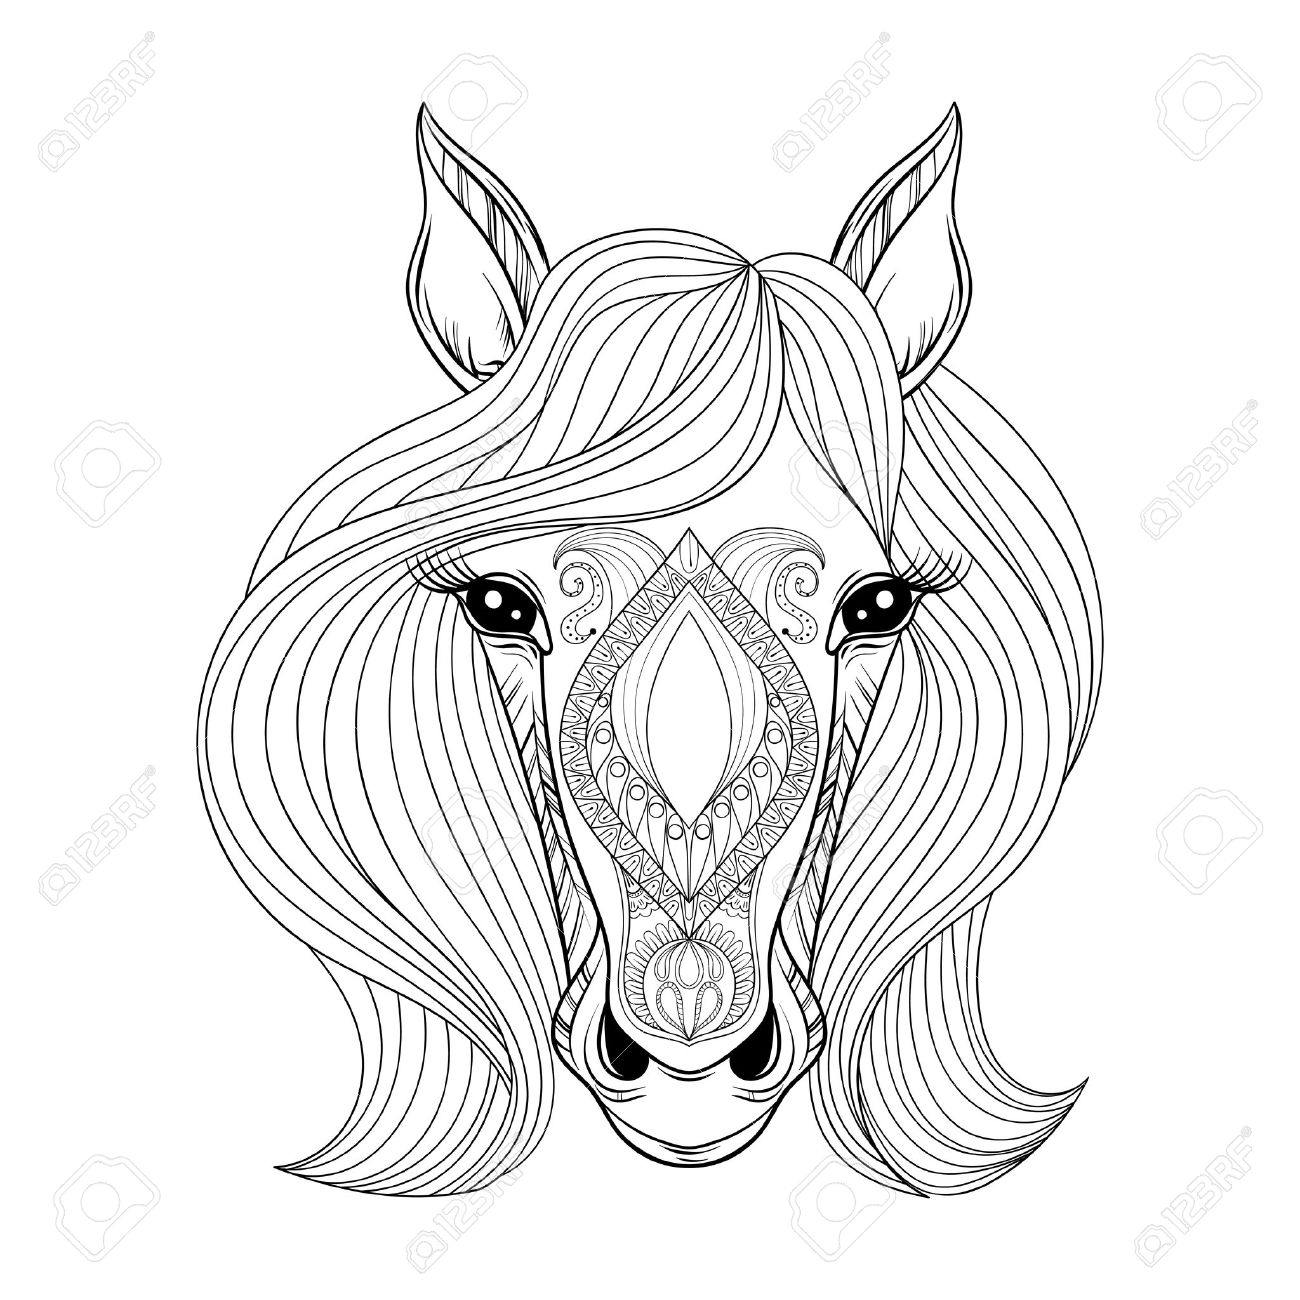 Vector Horse Coloring Page With Zentangled Horse Face Hand Drawn